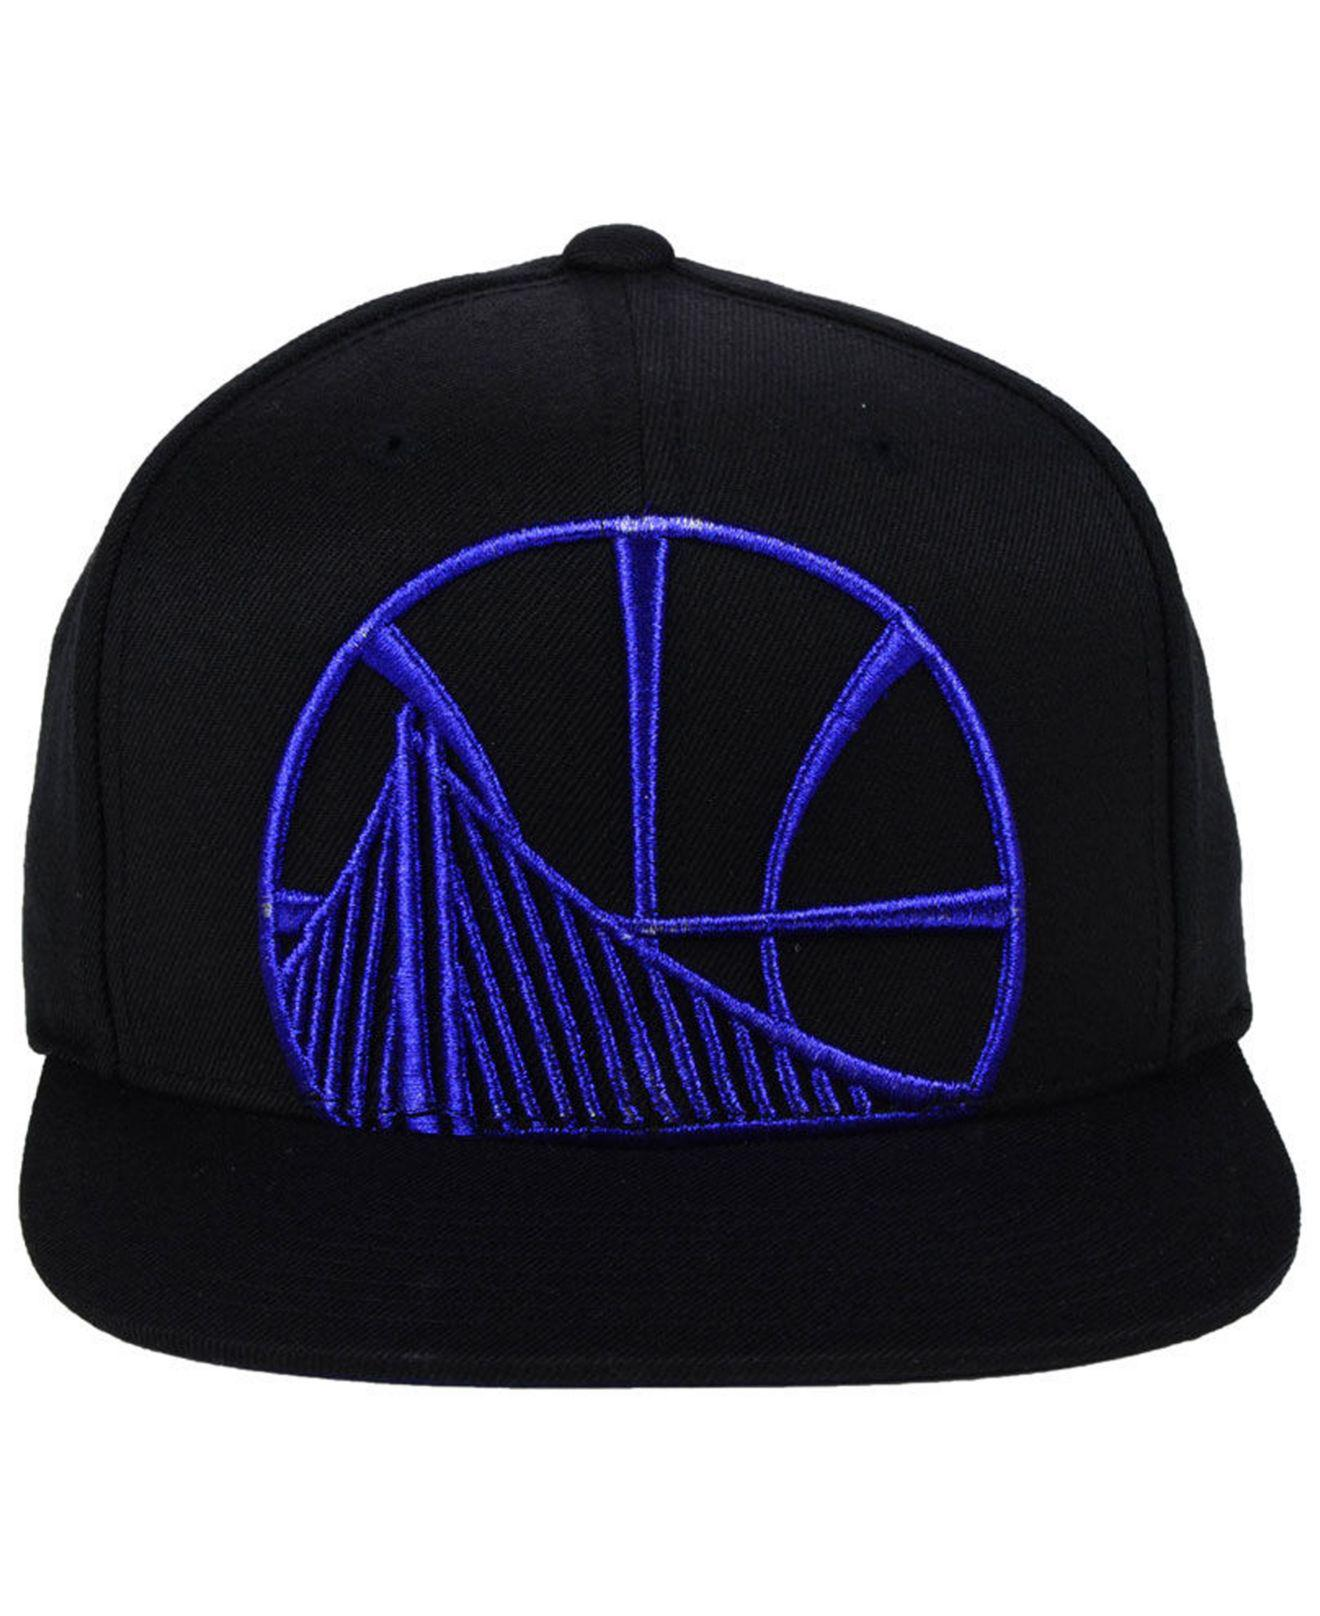 buy popular 14daf 970d4 ... greece lyst mitchell ness golden state warriors metallic cropped snapback  cap in black for men 5d2c3